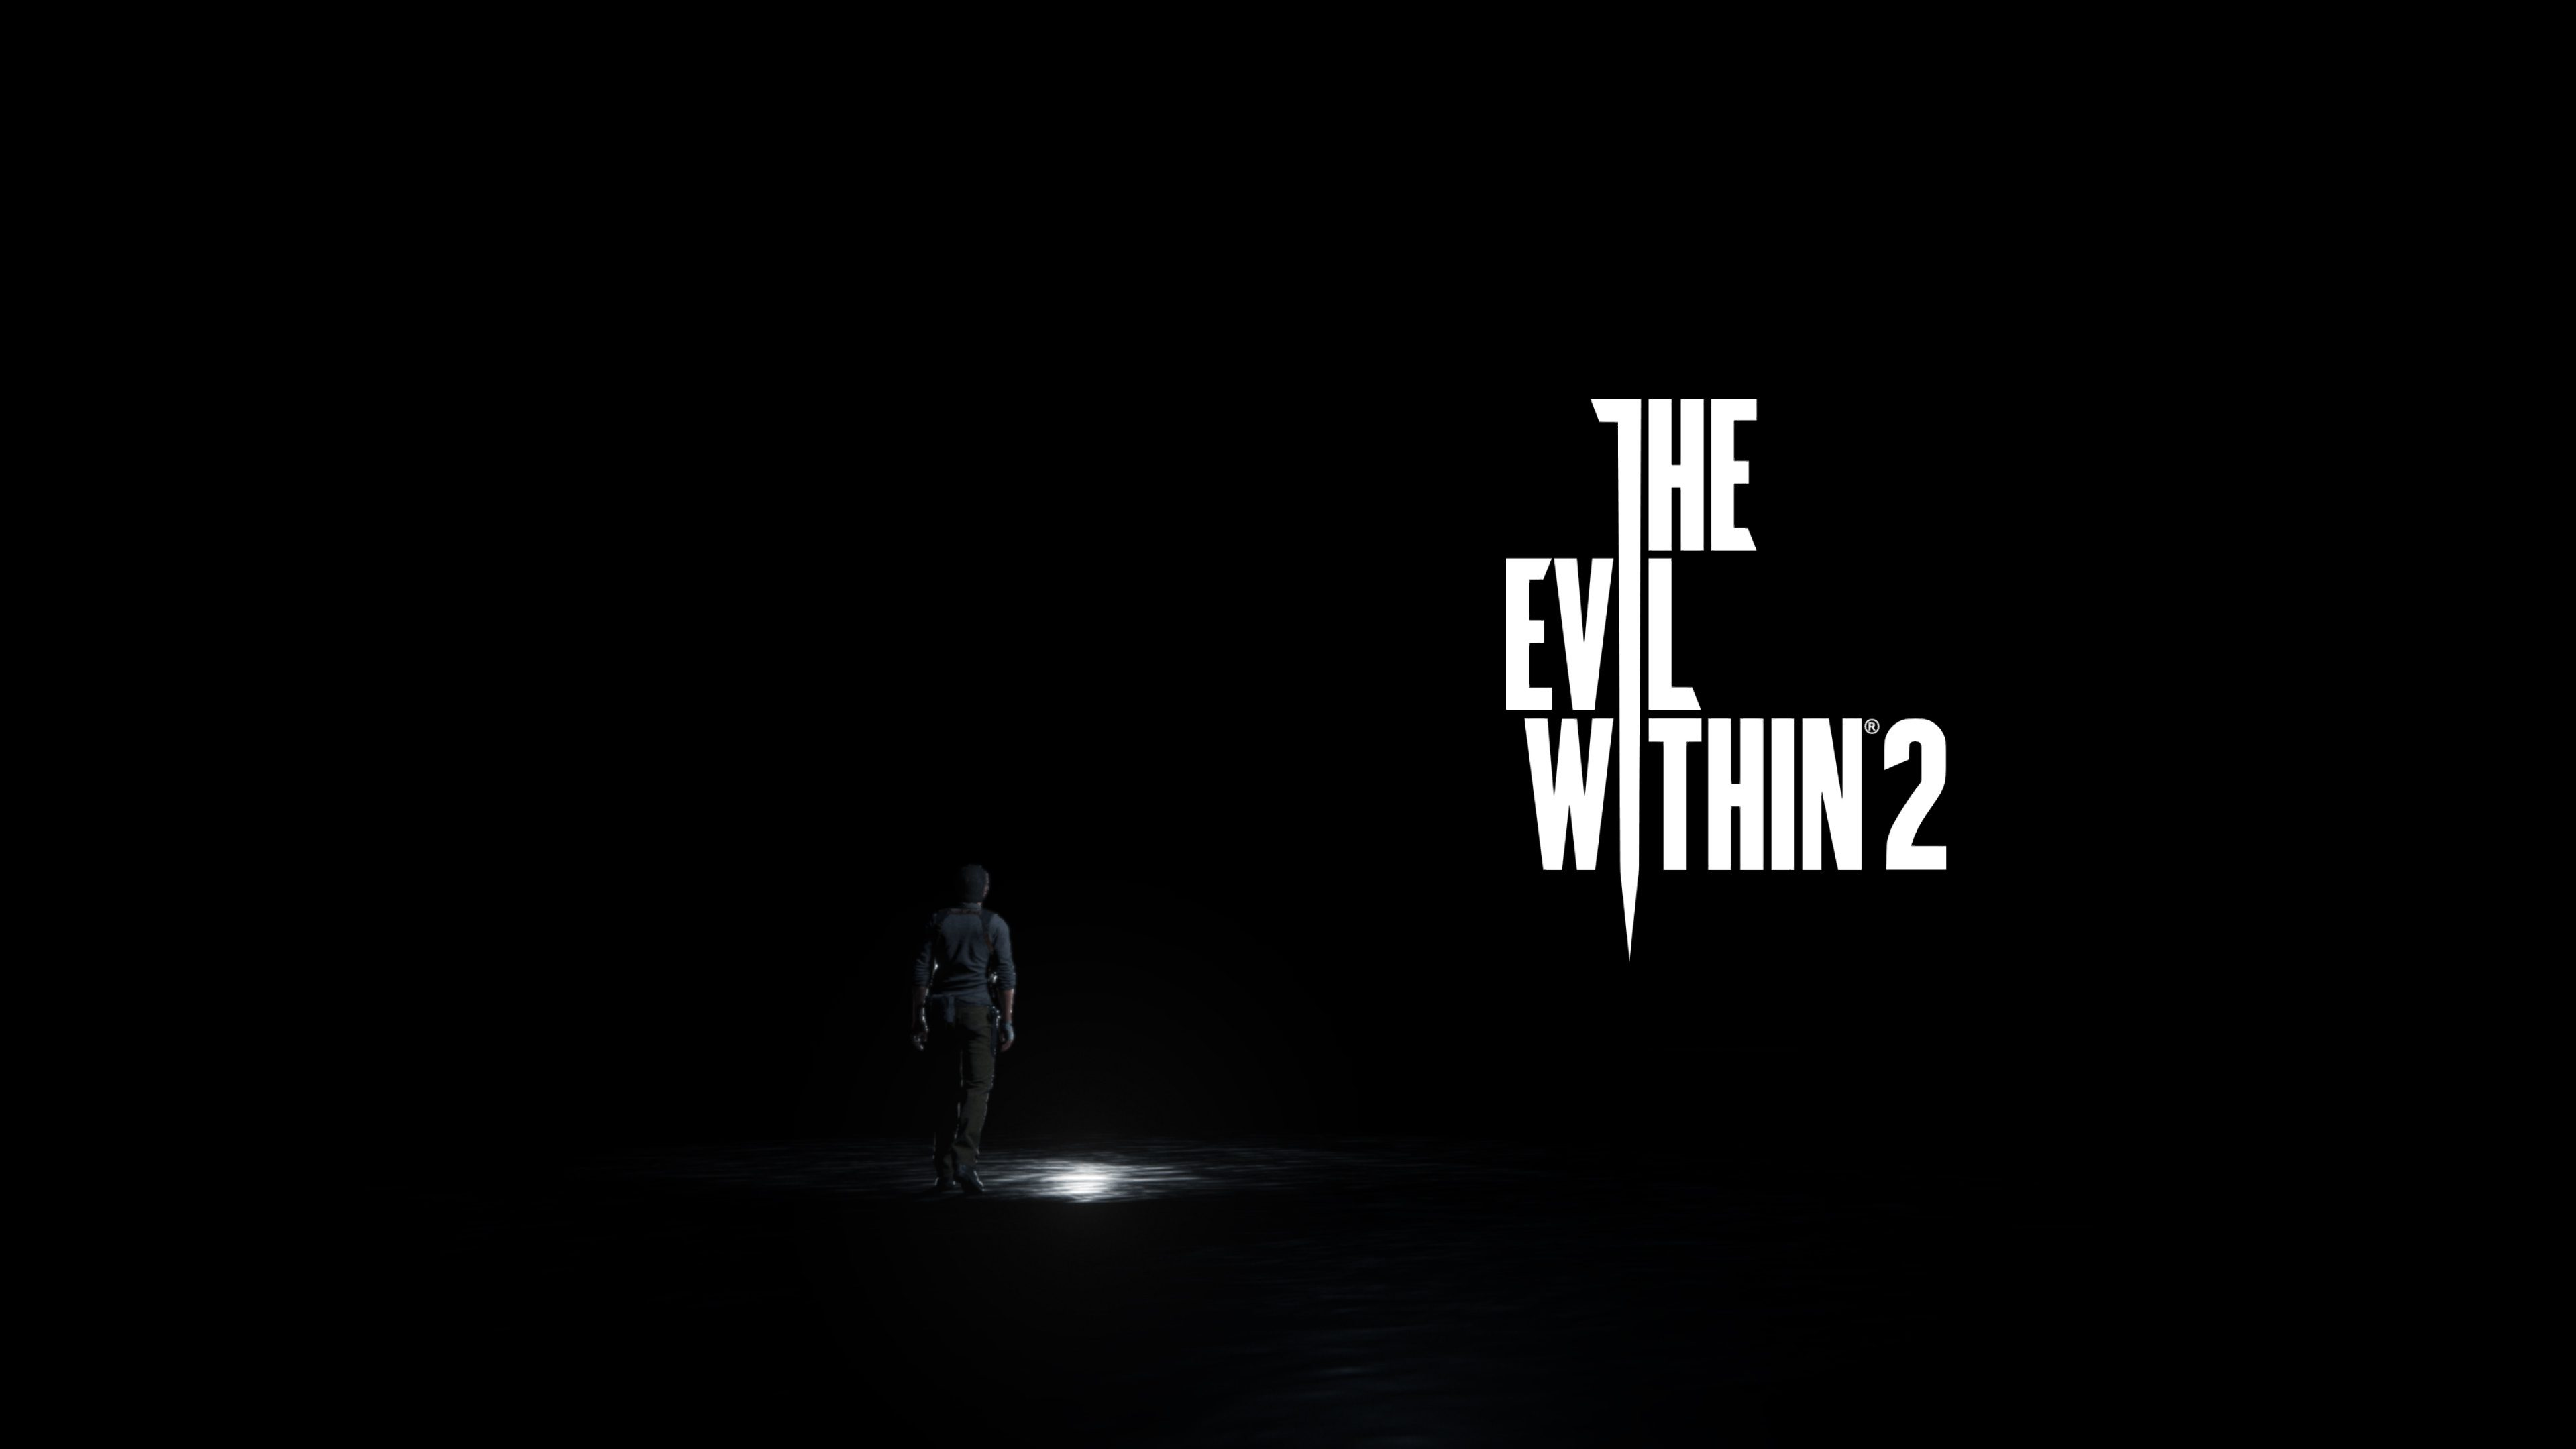 2017 The Evil Within 2 Full Hd Wallpaper: 1920x1080 The Evil Within 2 Game Laptop Full HD 1080P HD